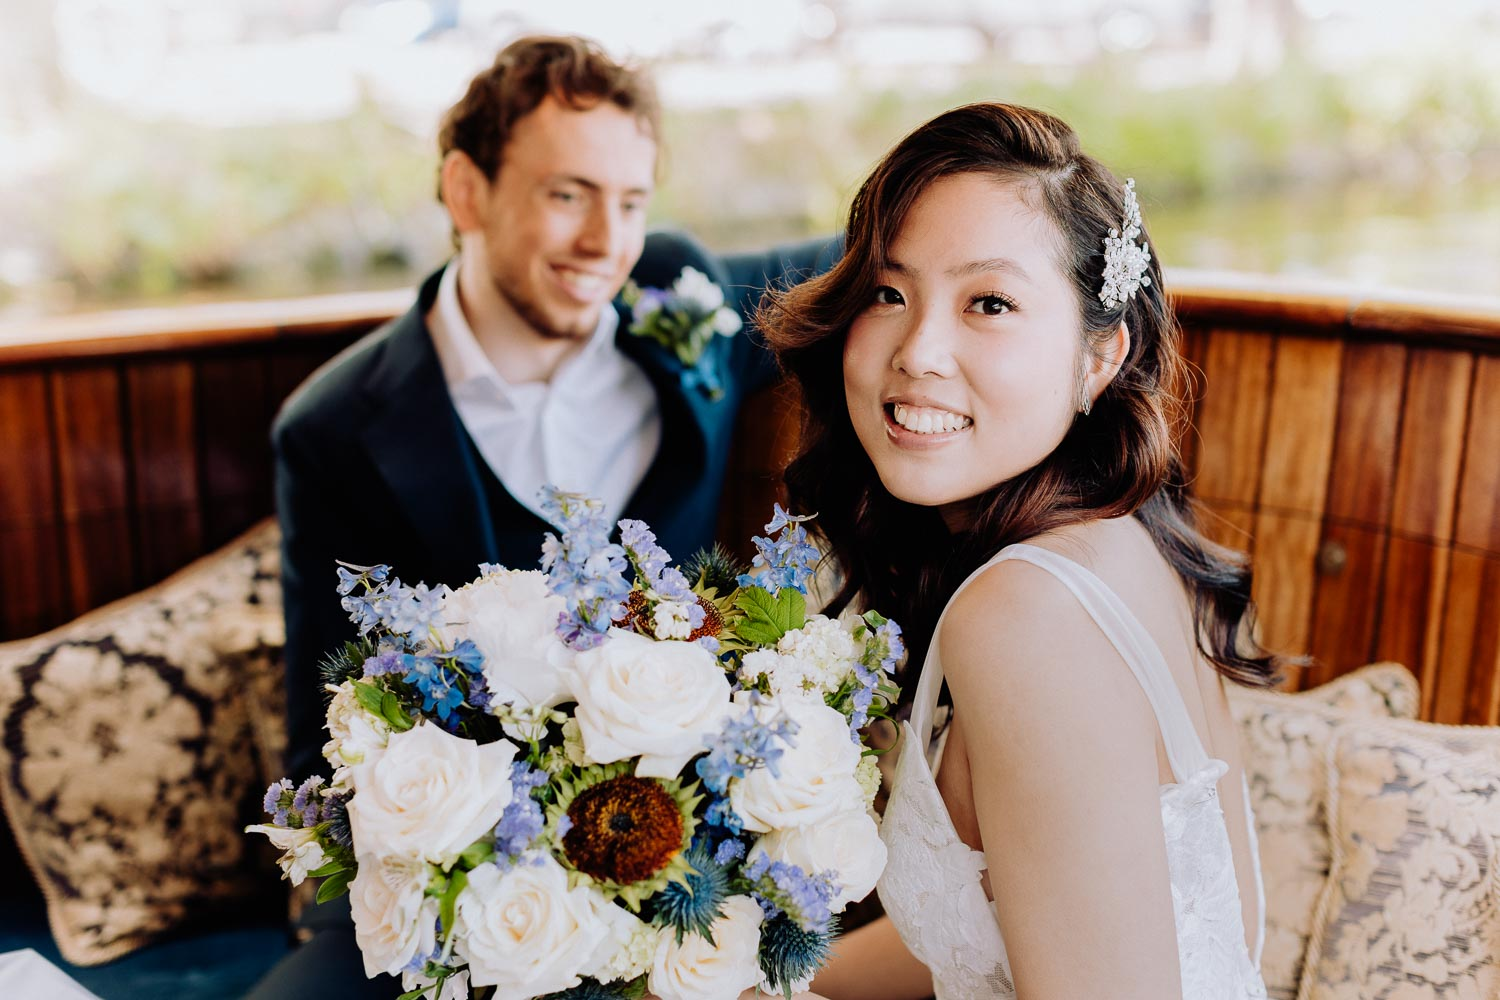 a beautiful bride sits on a chair and holds a bouquet of white roses in her hands, and the groom looks at her